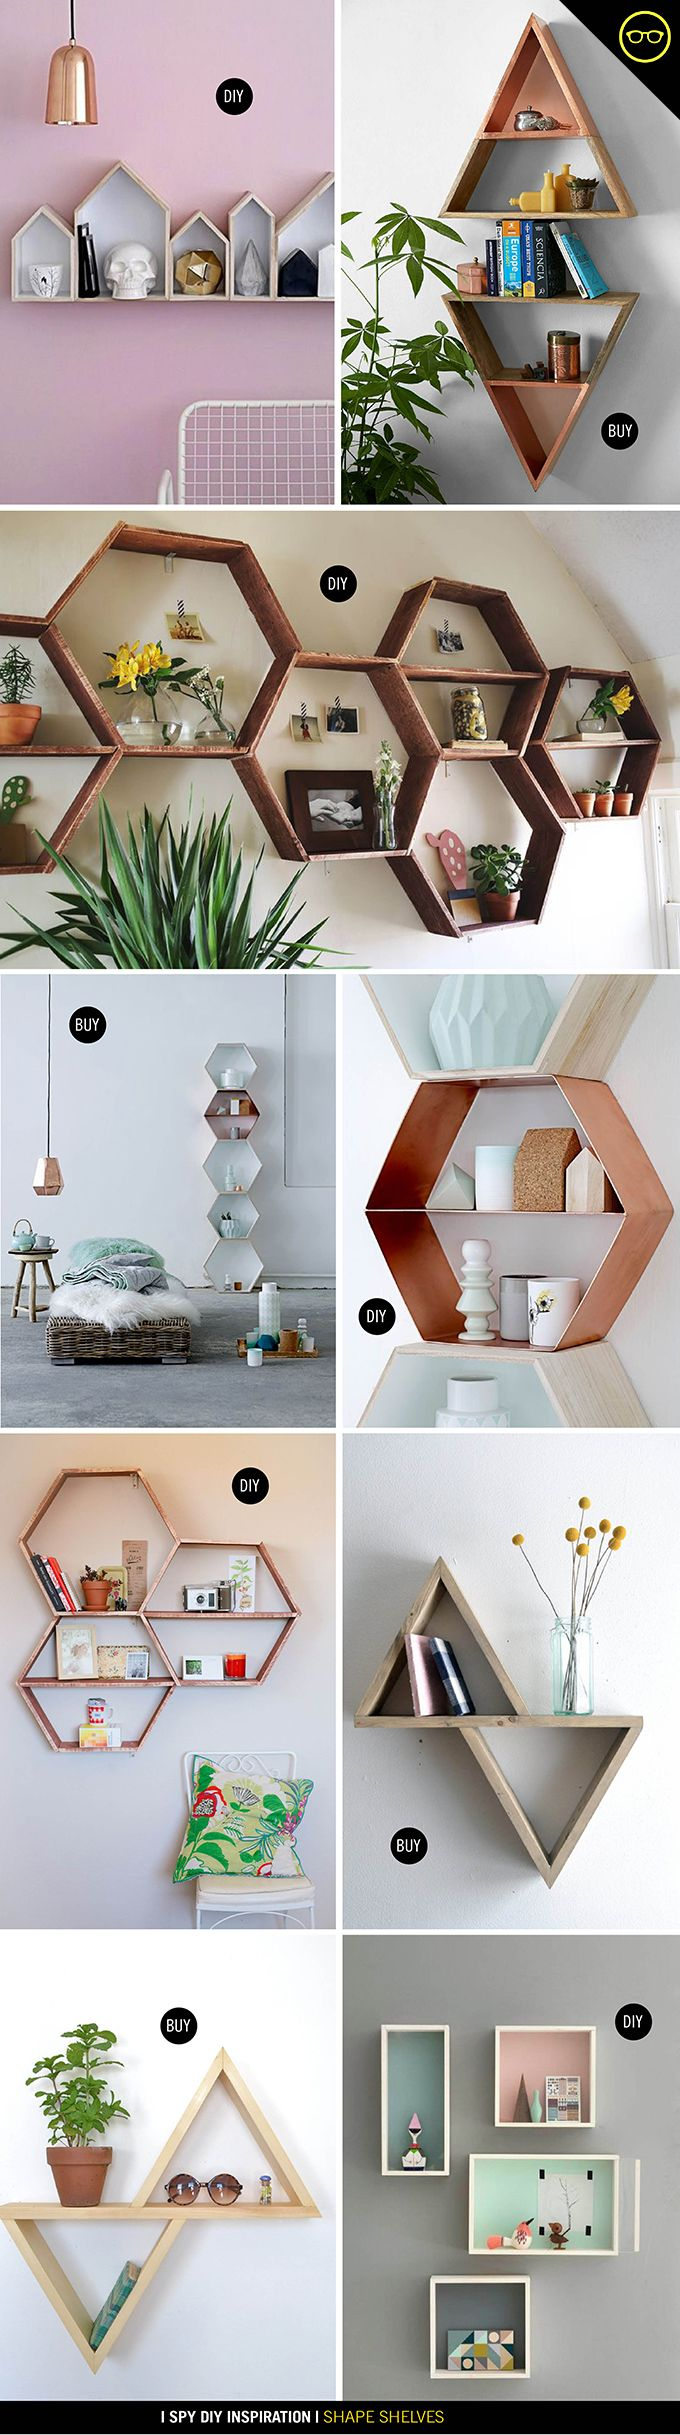 I think geometric designs are cool, but I'm not sure if they'll be too edgy for the room I'm trying to create.